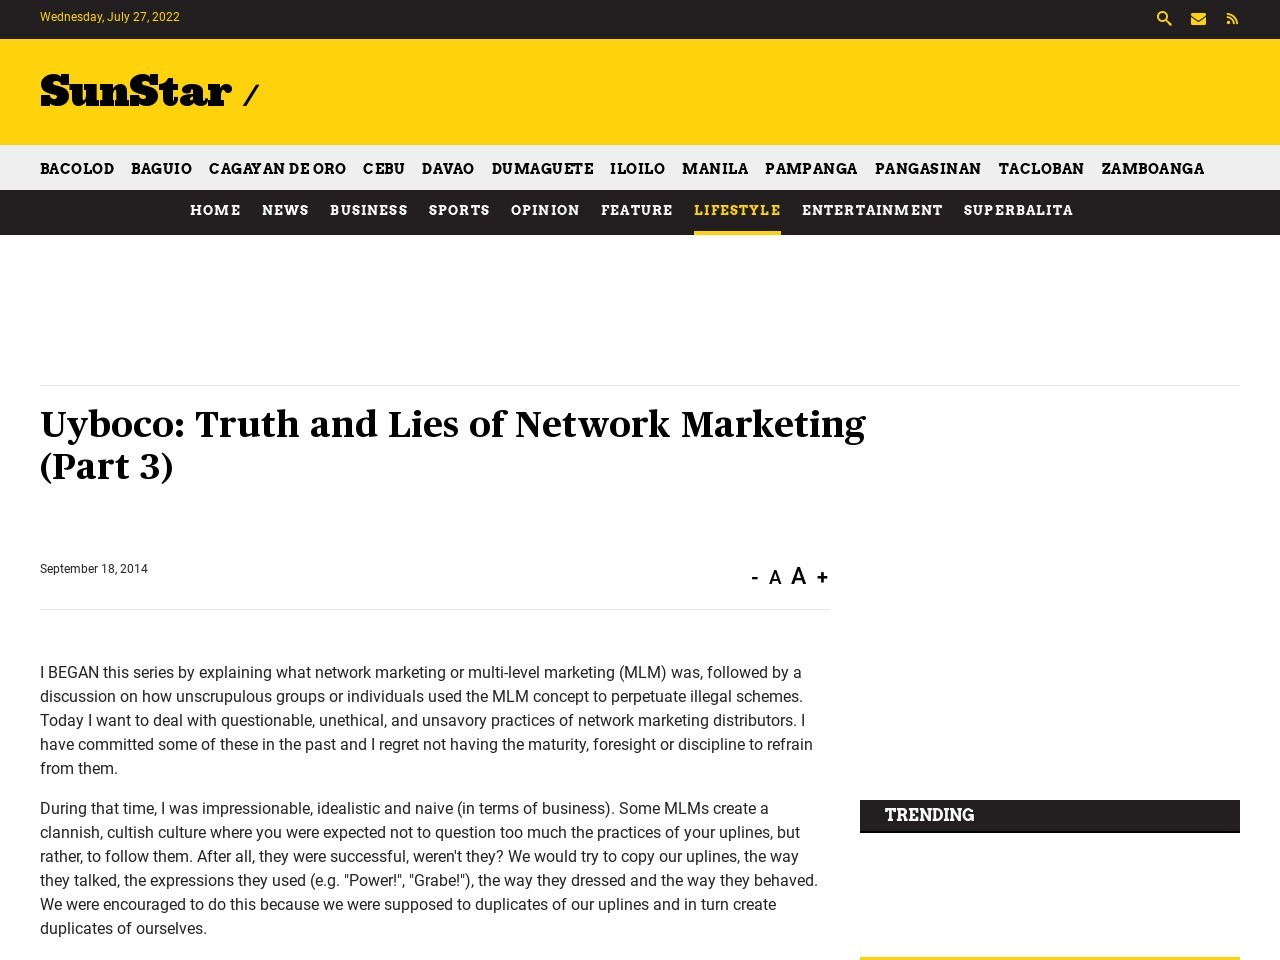 Truth and Lies of Network Marketing (Part 3)